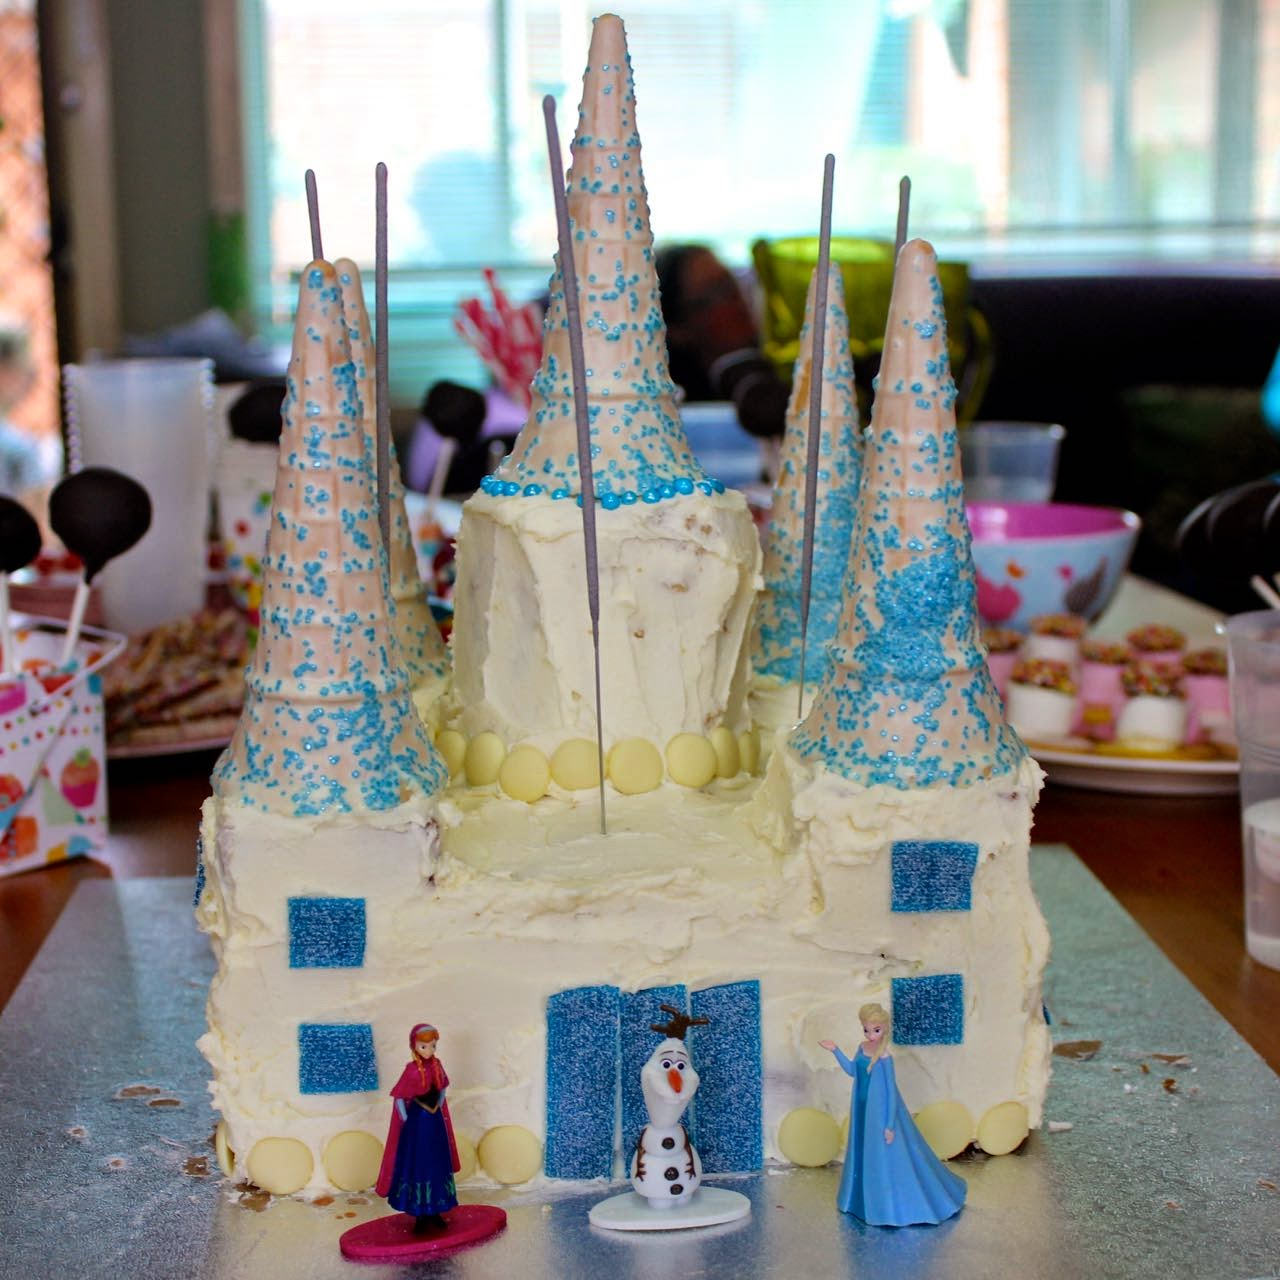 Easy Frozen Themed Cake Ideas The Best Cake Of 2018